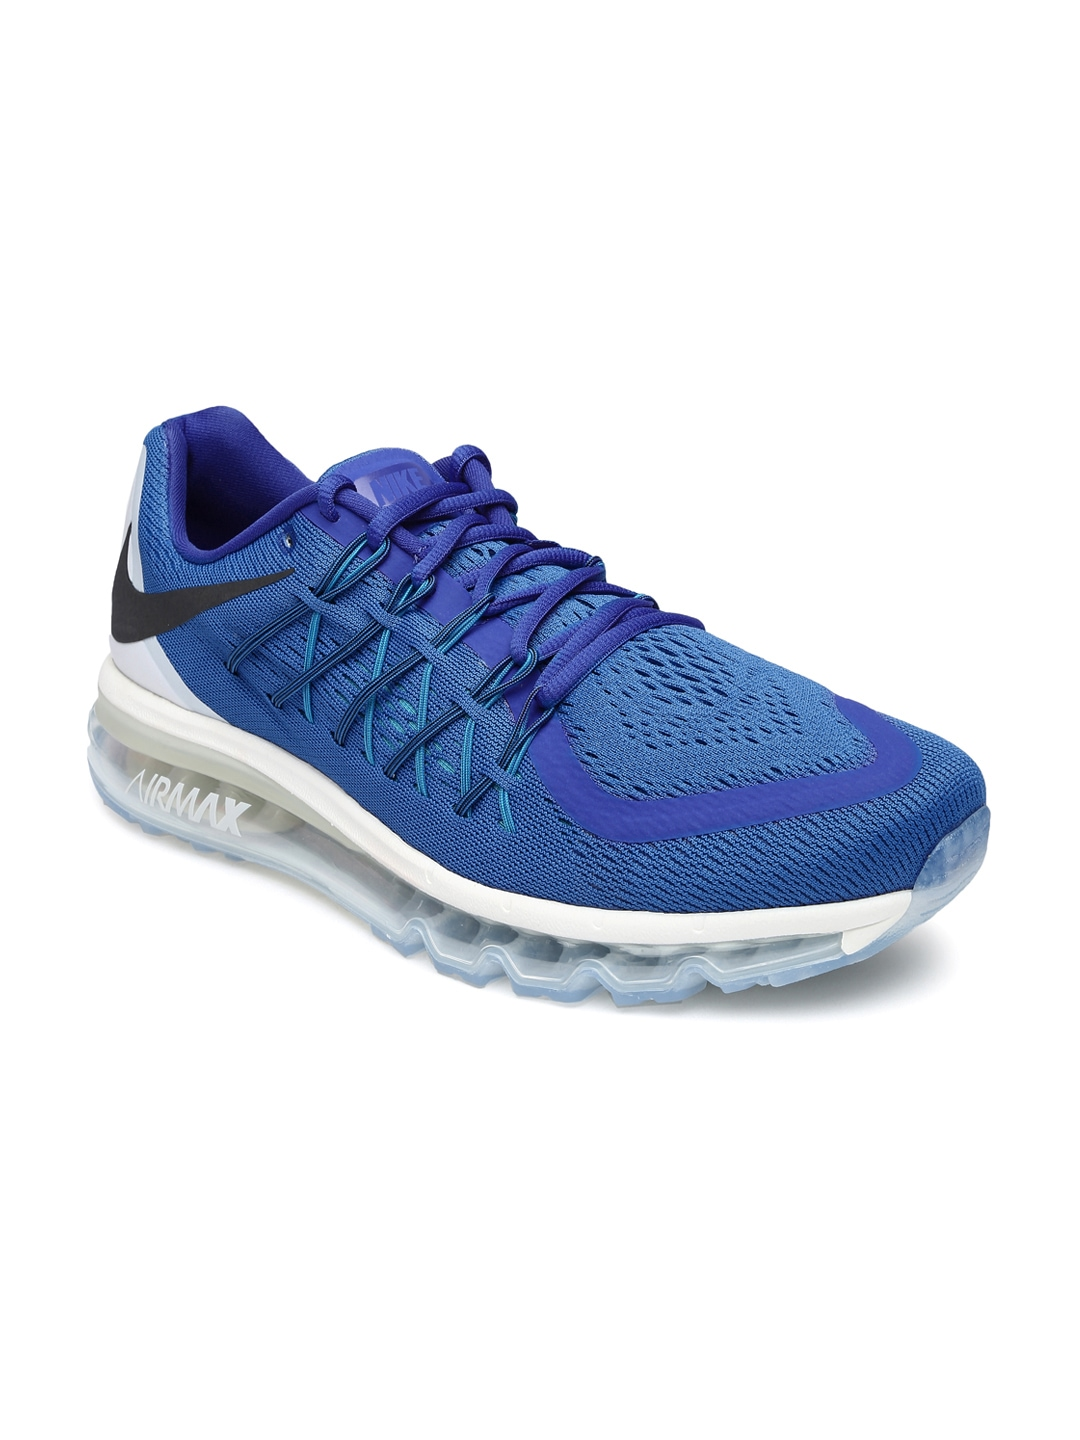 quality design bf0cc f36be Nike shoes coupon for myntra - Nissan lease deals ma